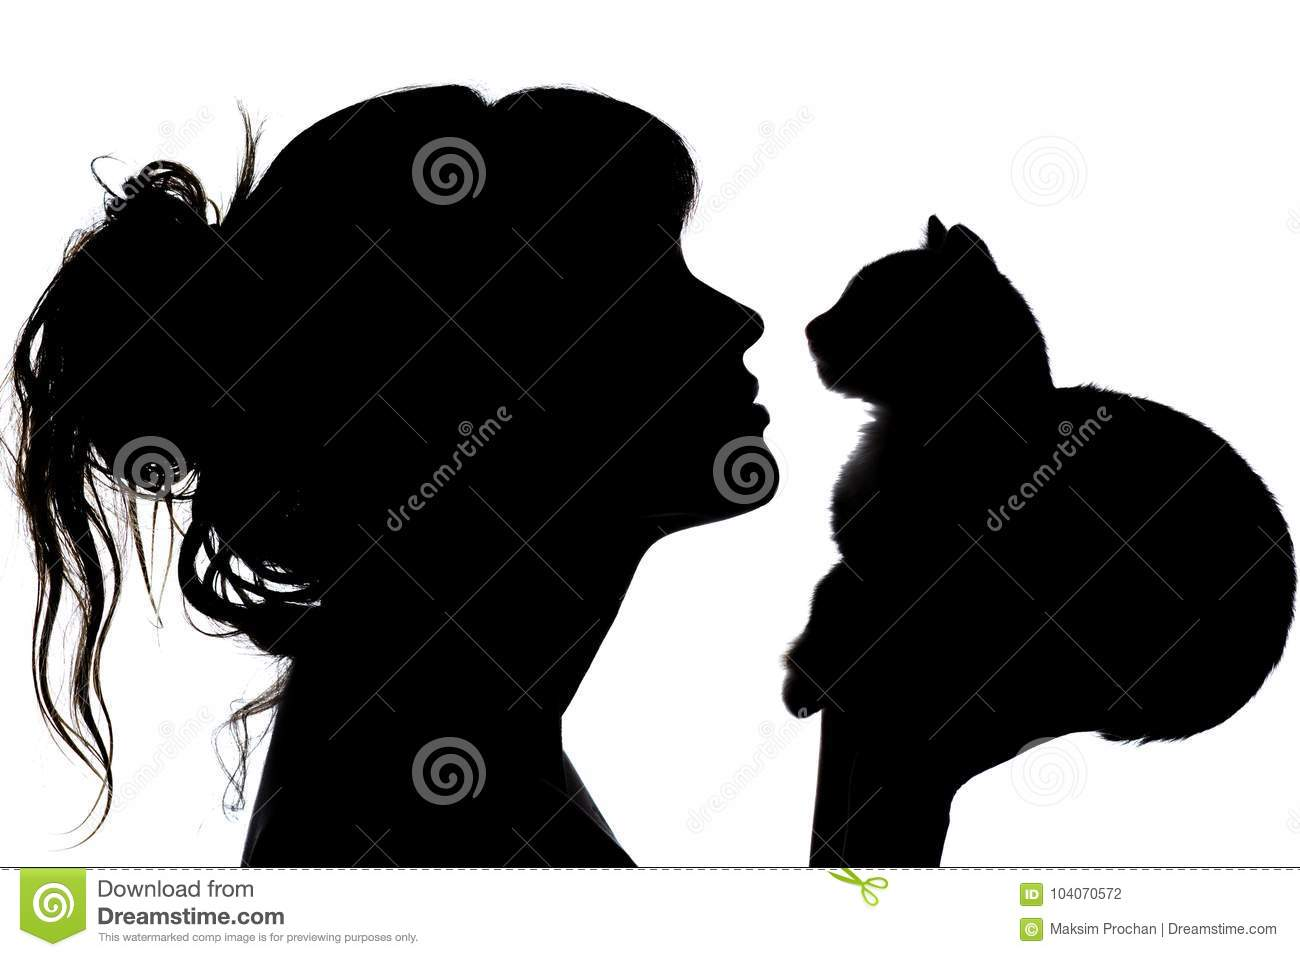 Silhouette of a beautiful woman with wavy hair that nose to nose with a small kitten in her arms, the concept of caring for animal